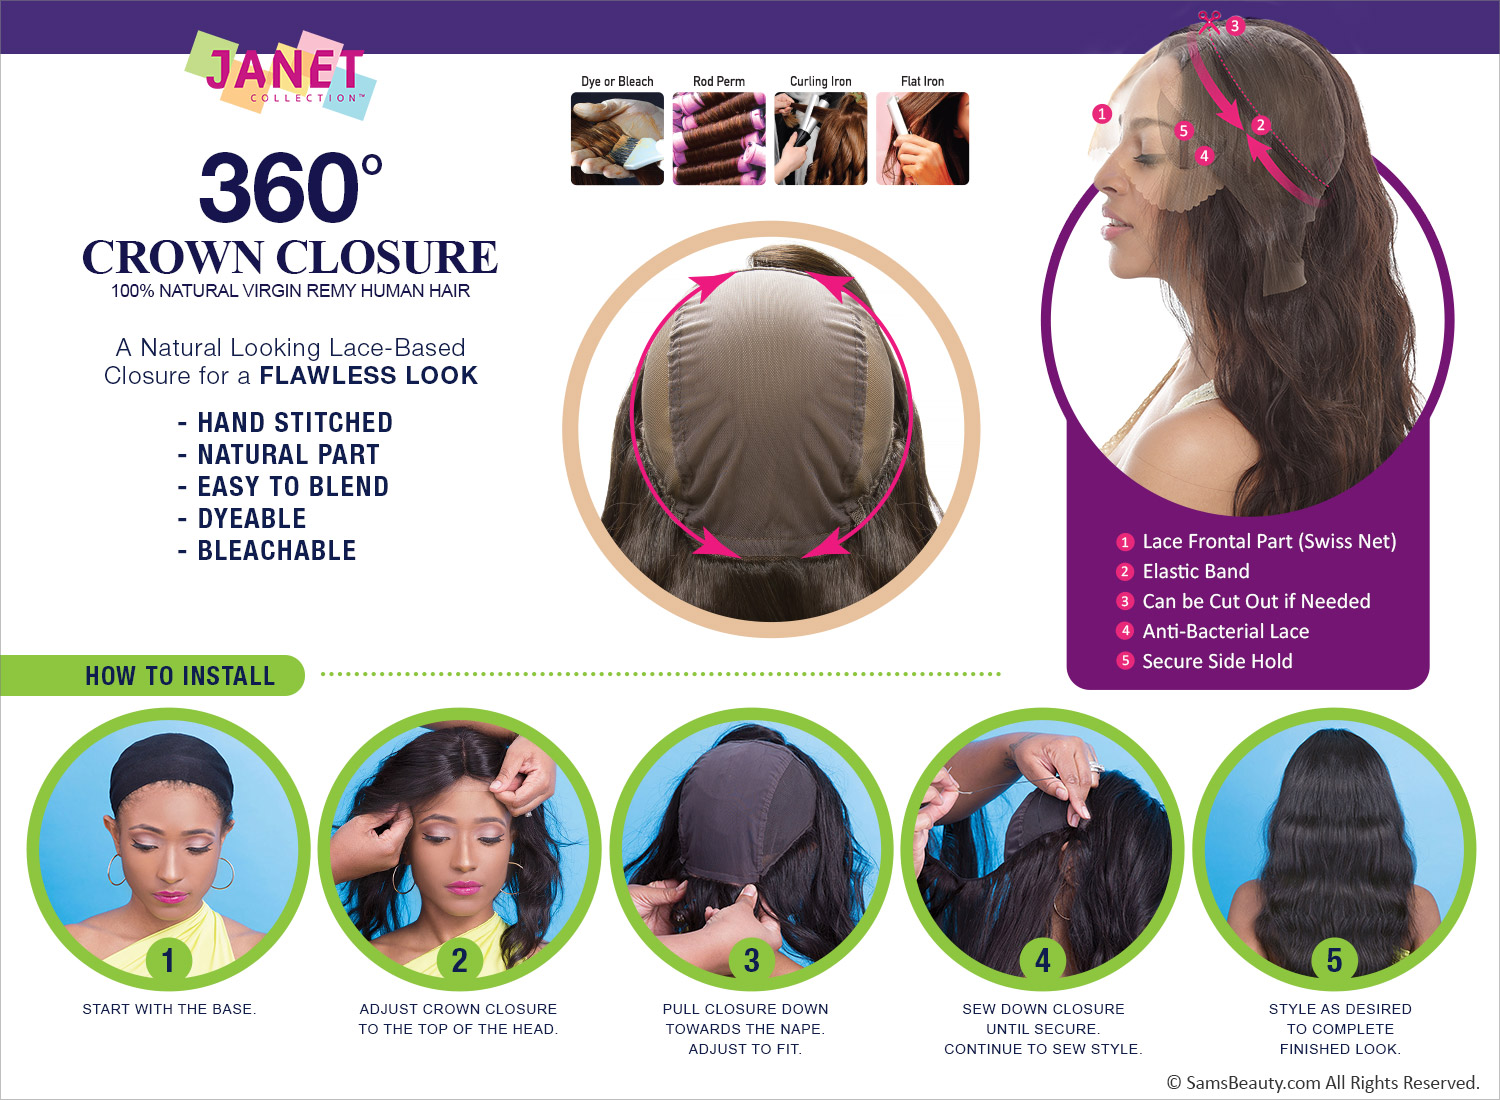 Janet Collection Virgin Remy Human Hair Weave 360 Crown Closure 360